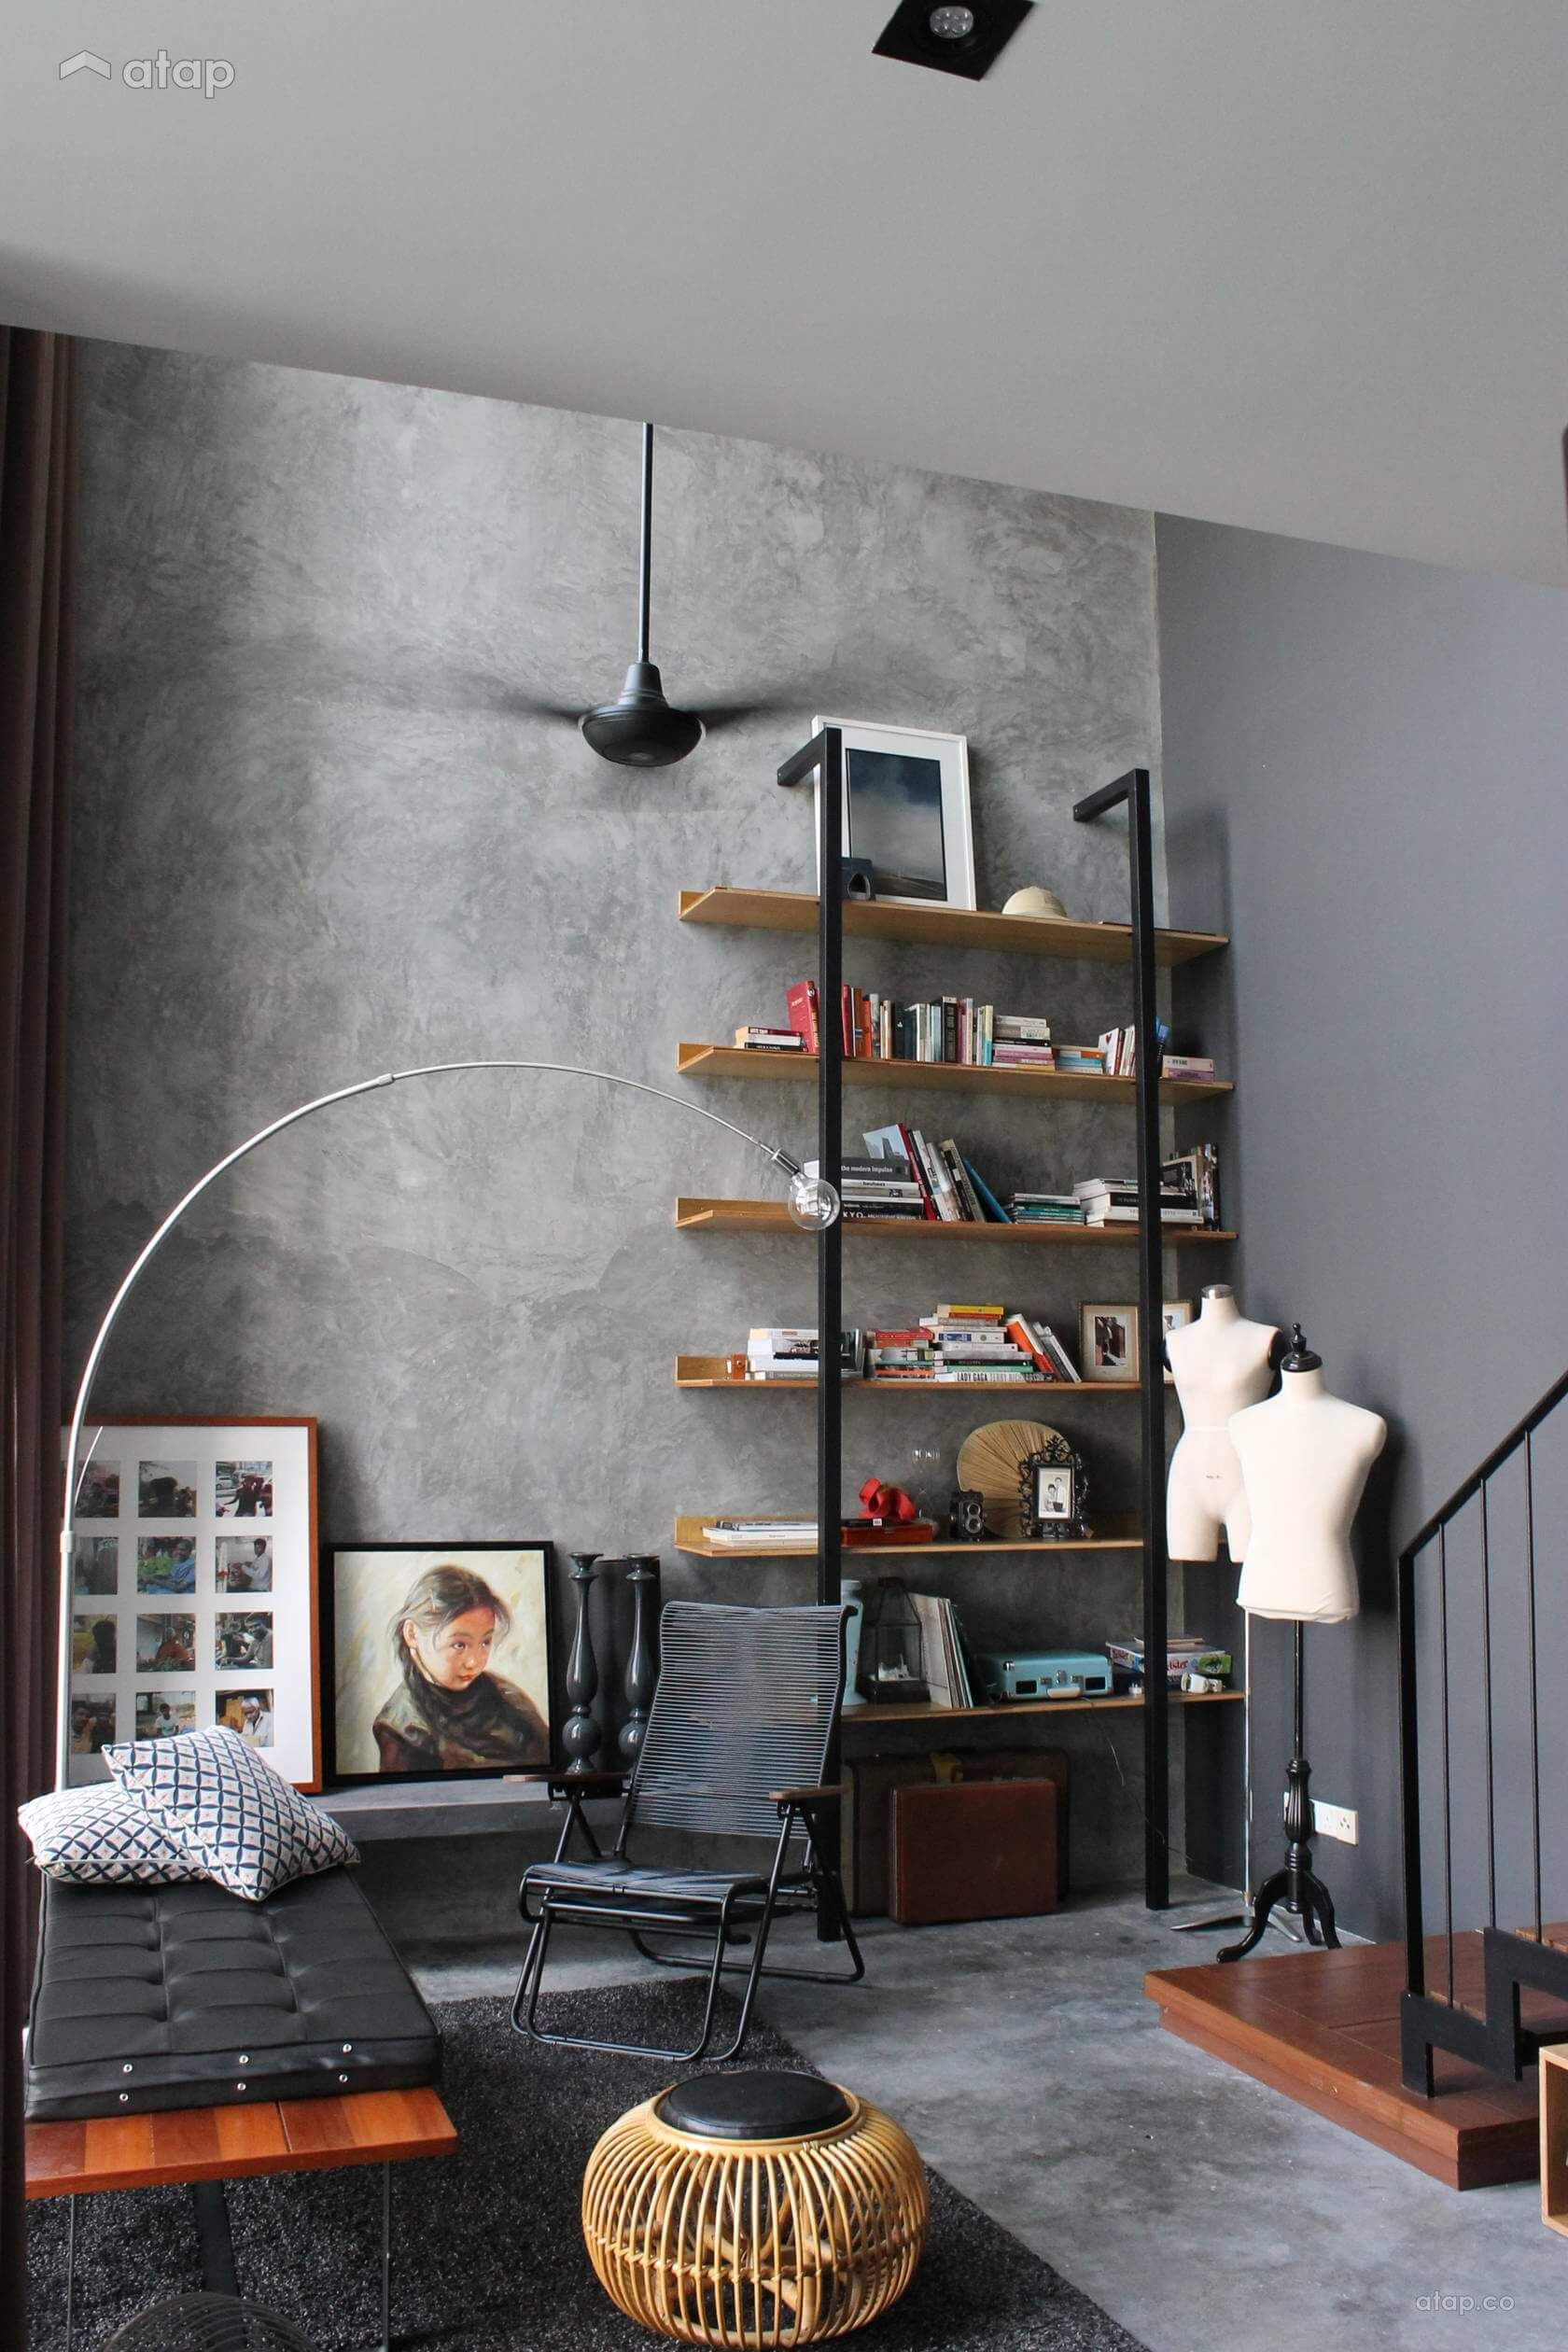 Studio Interior Design Ideas The Artistic Approach To Live In A